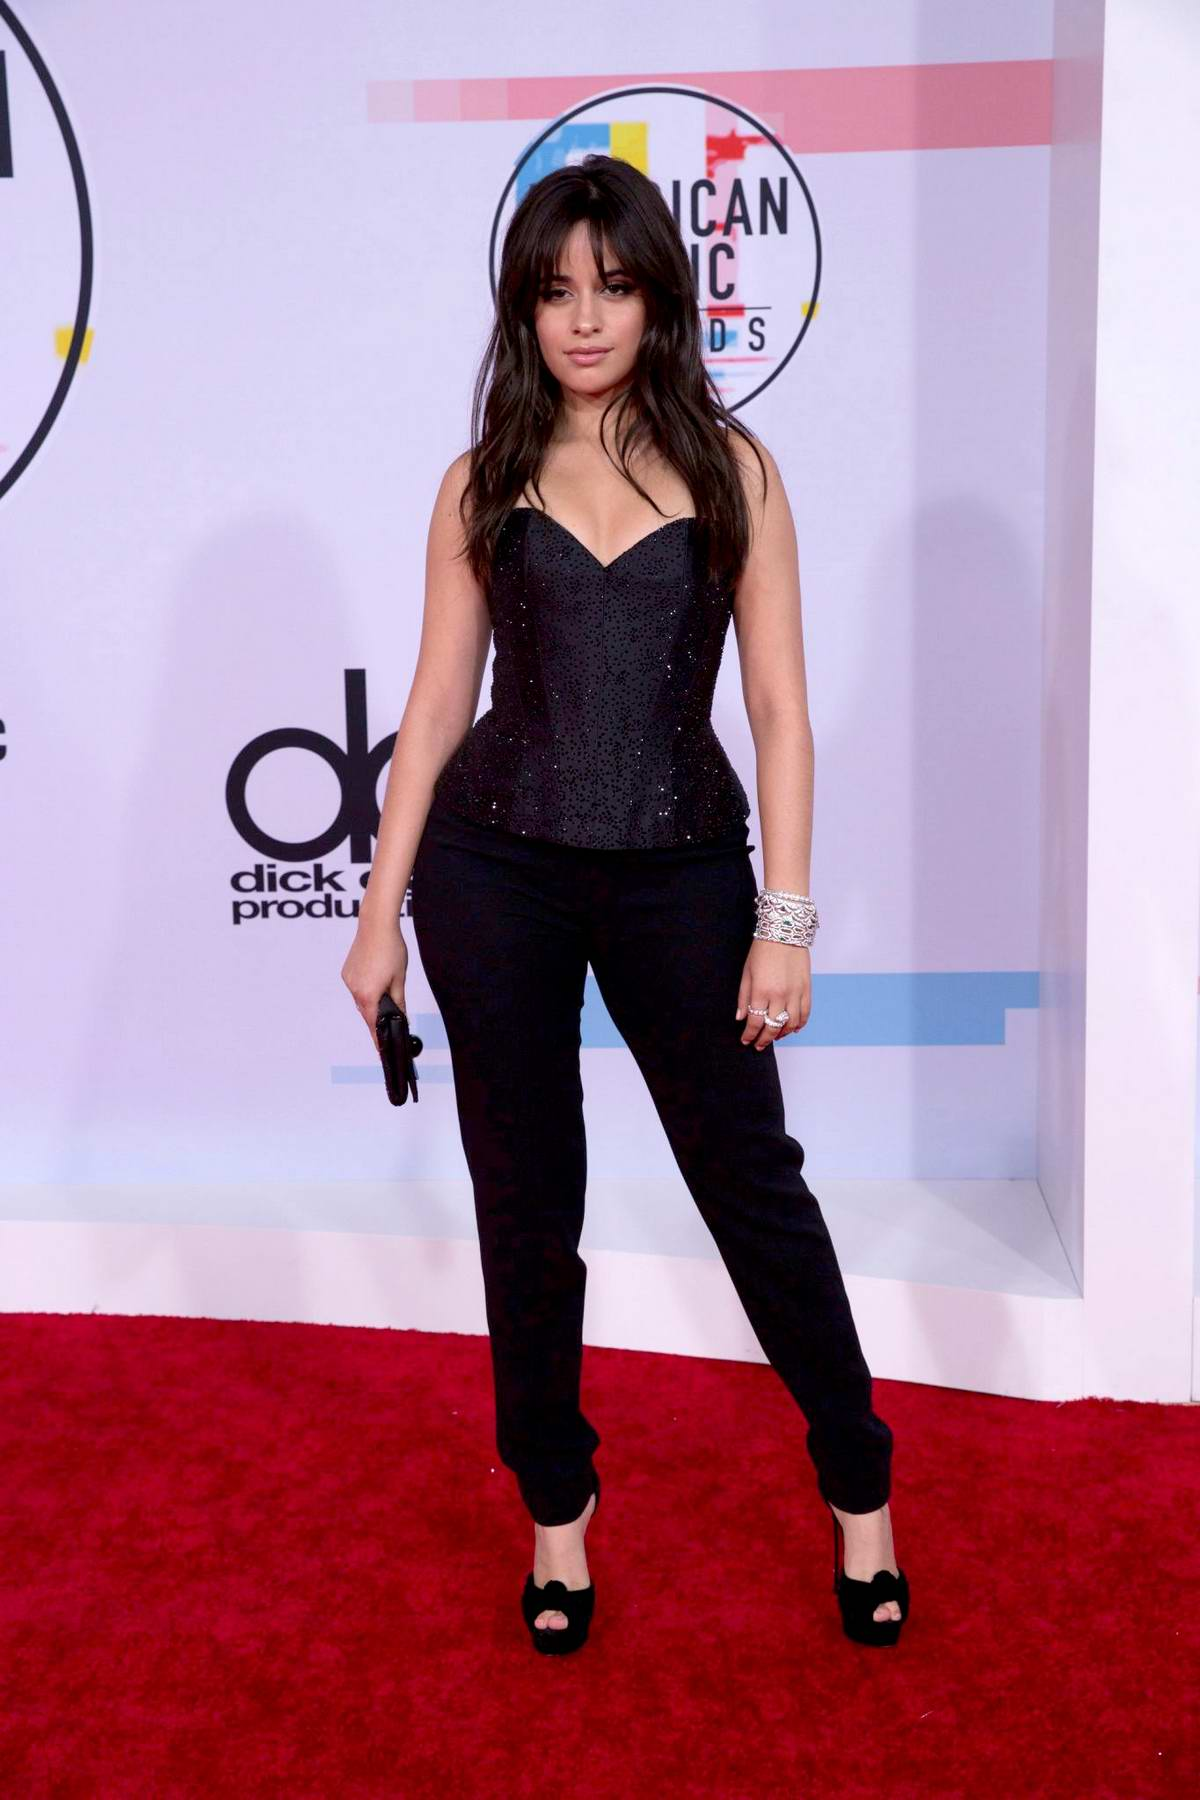 Camila Cabello attends 2018 American Music Awards (AMA 2018) at Microsoft Theater in Los Angeles